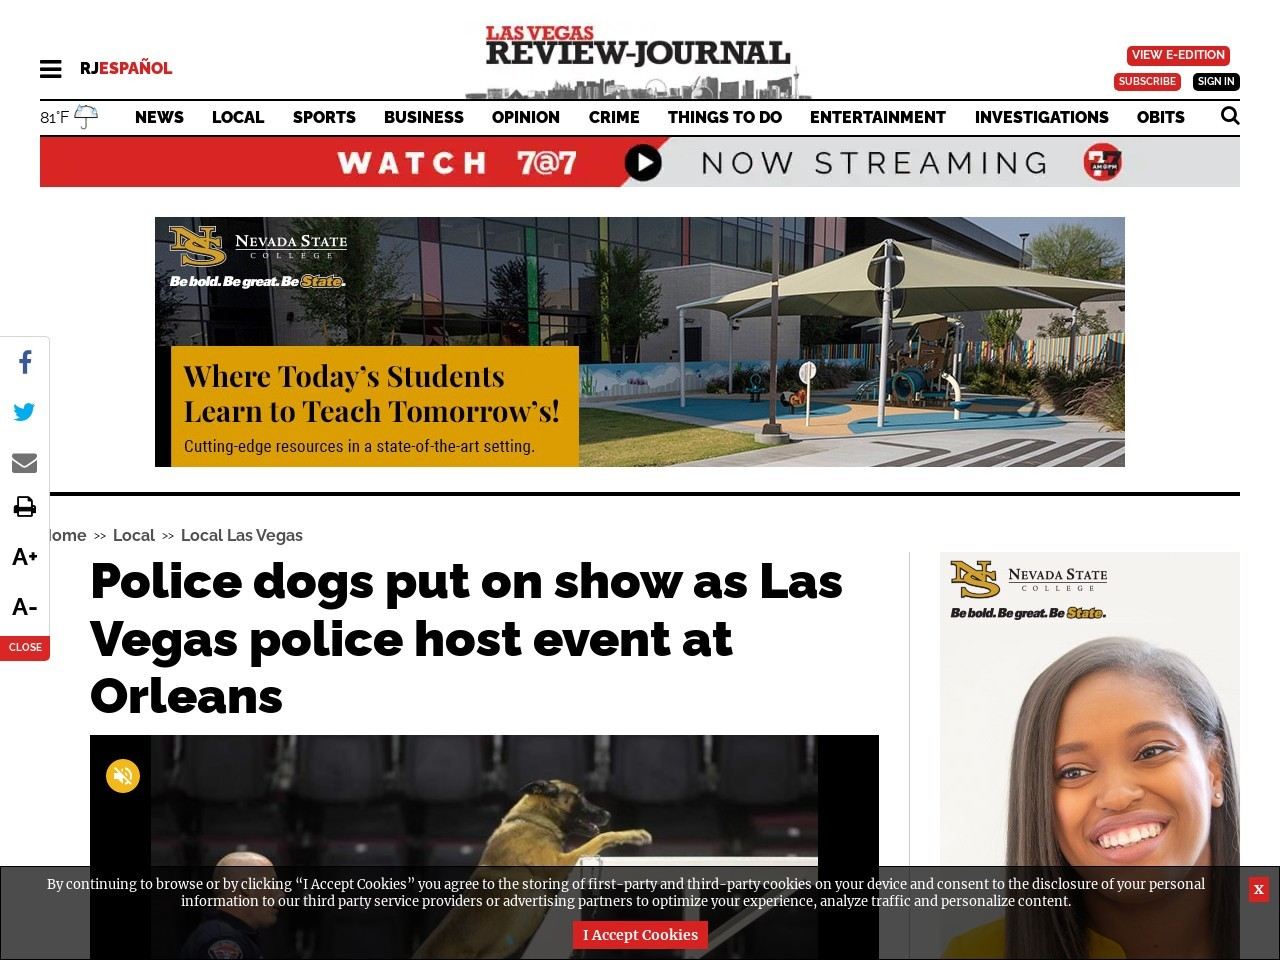 Police dogs put on show as Las Vegas police host event at Orleans